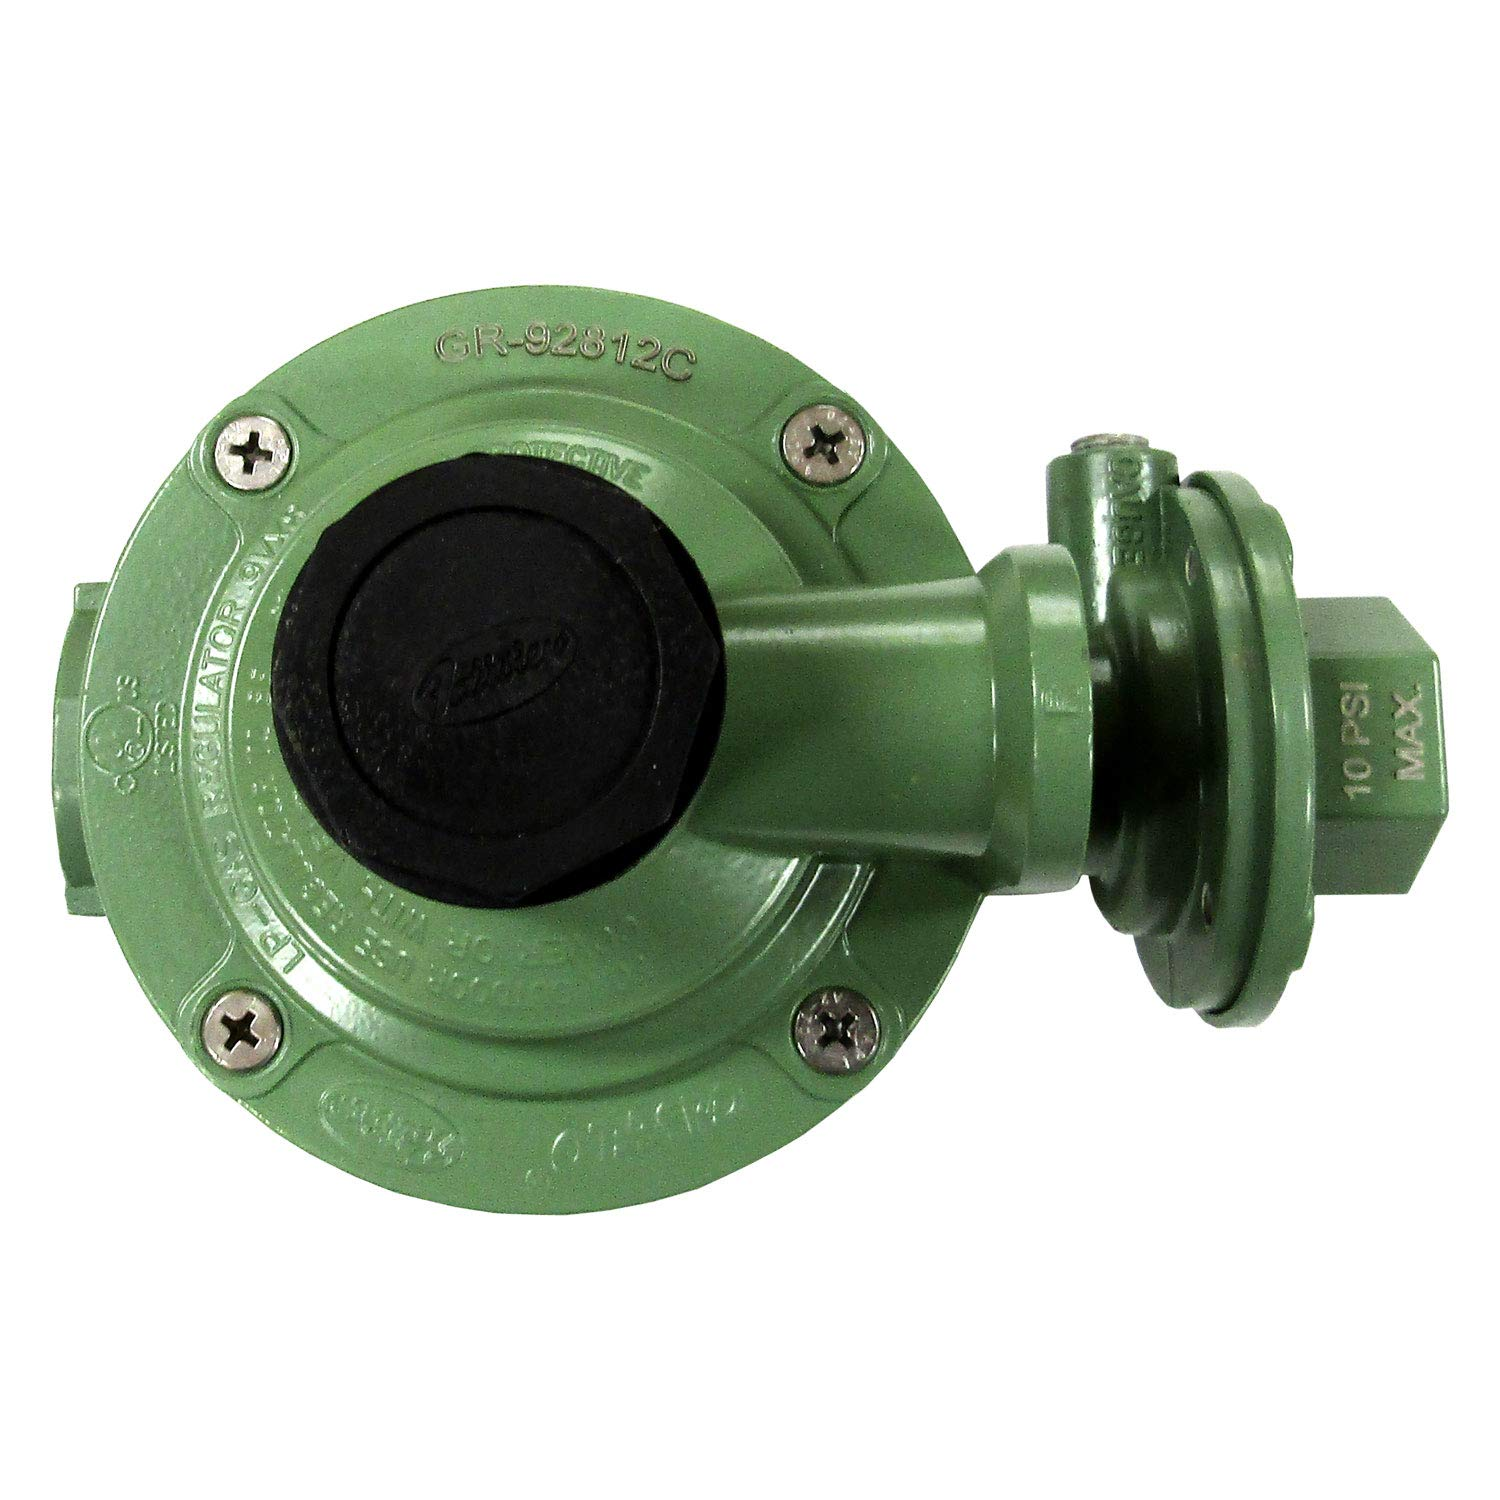 Fairview GR-92812C Compact Second Stage Low Pressure Propane Regulator by Fairview (Image #3)